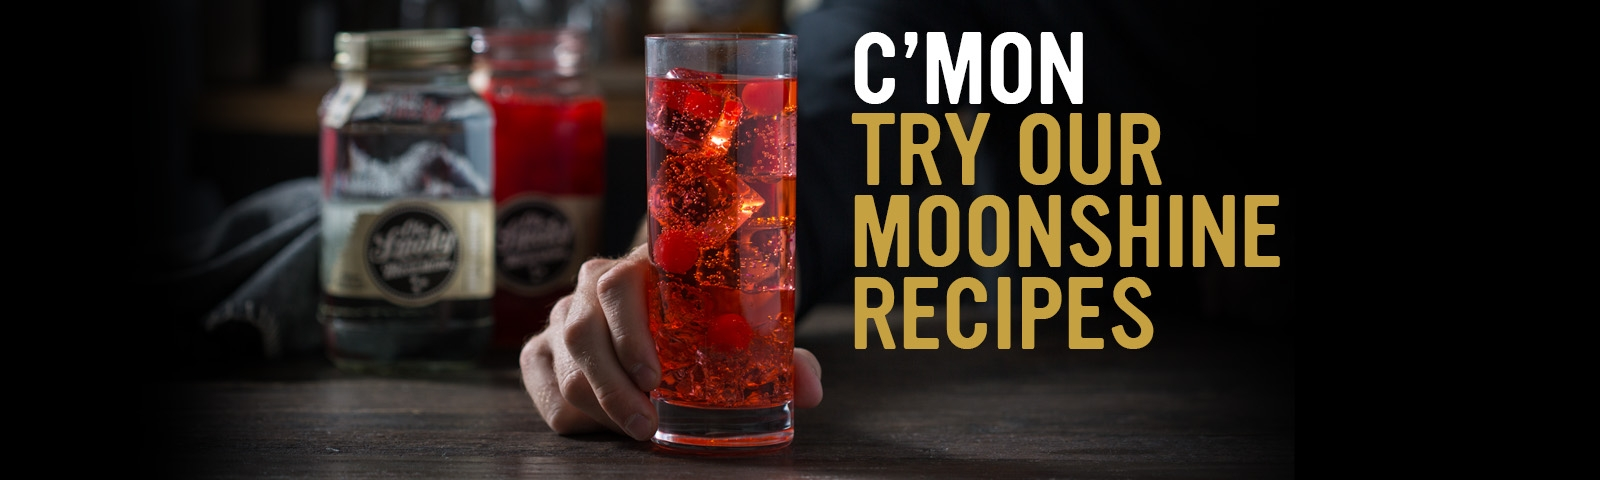 C'mon Try Moonshine Recipes